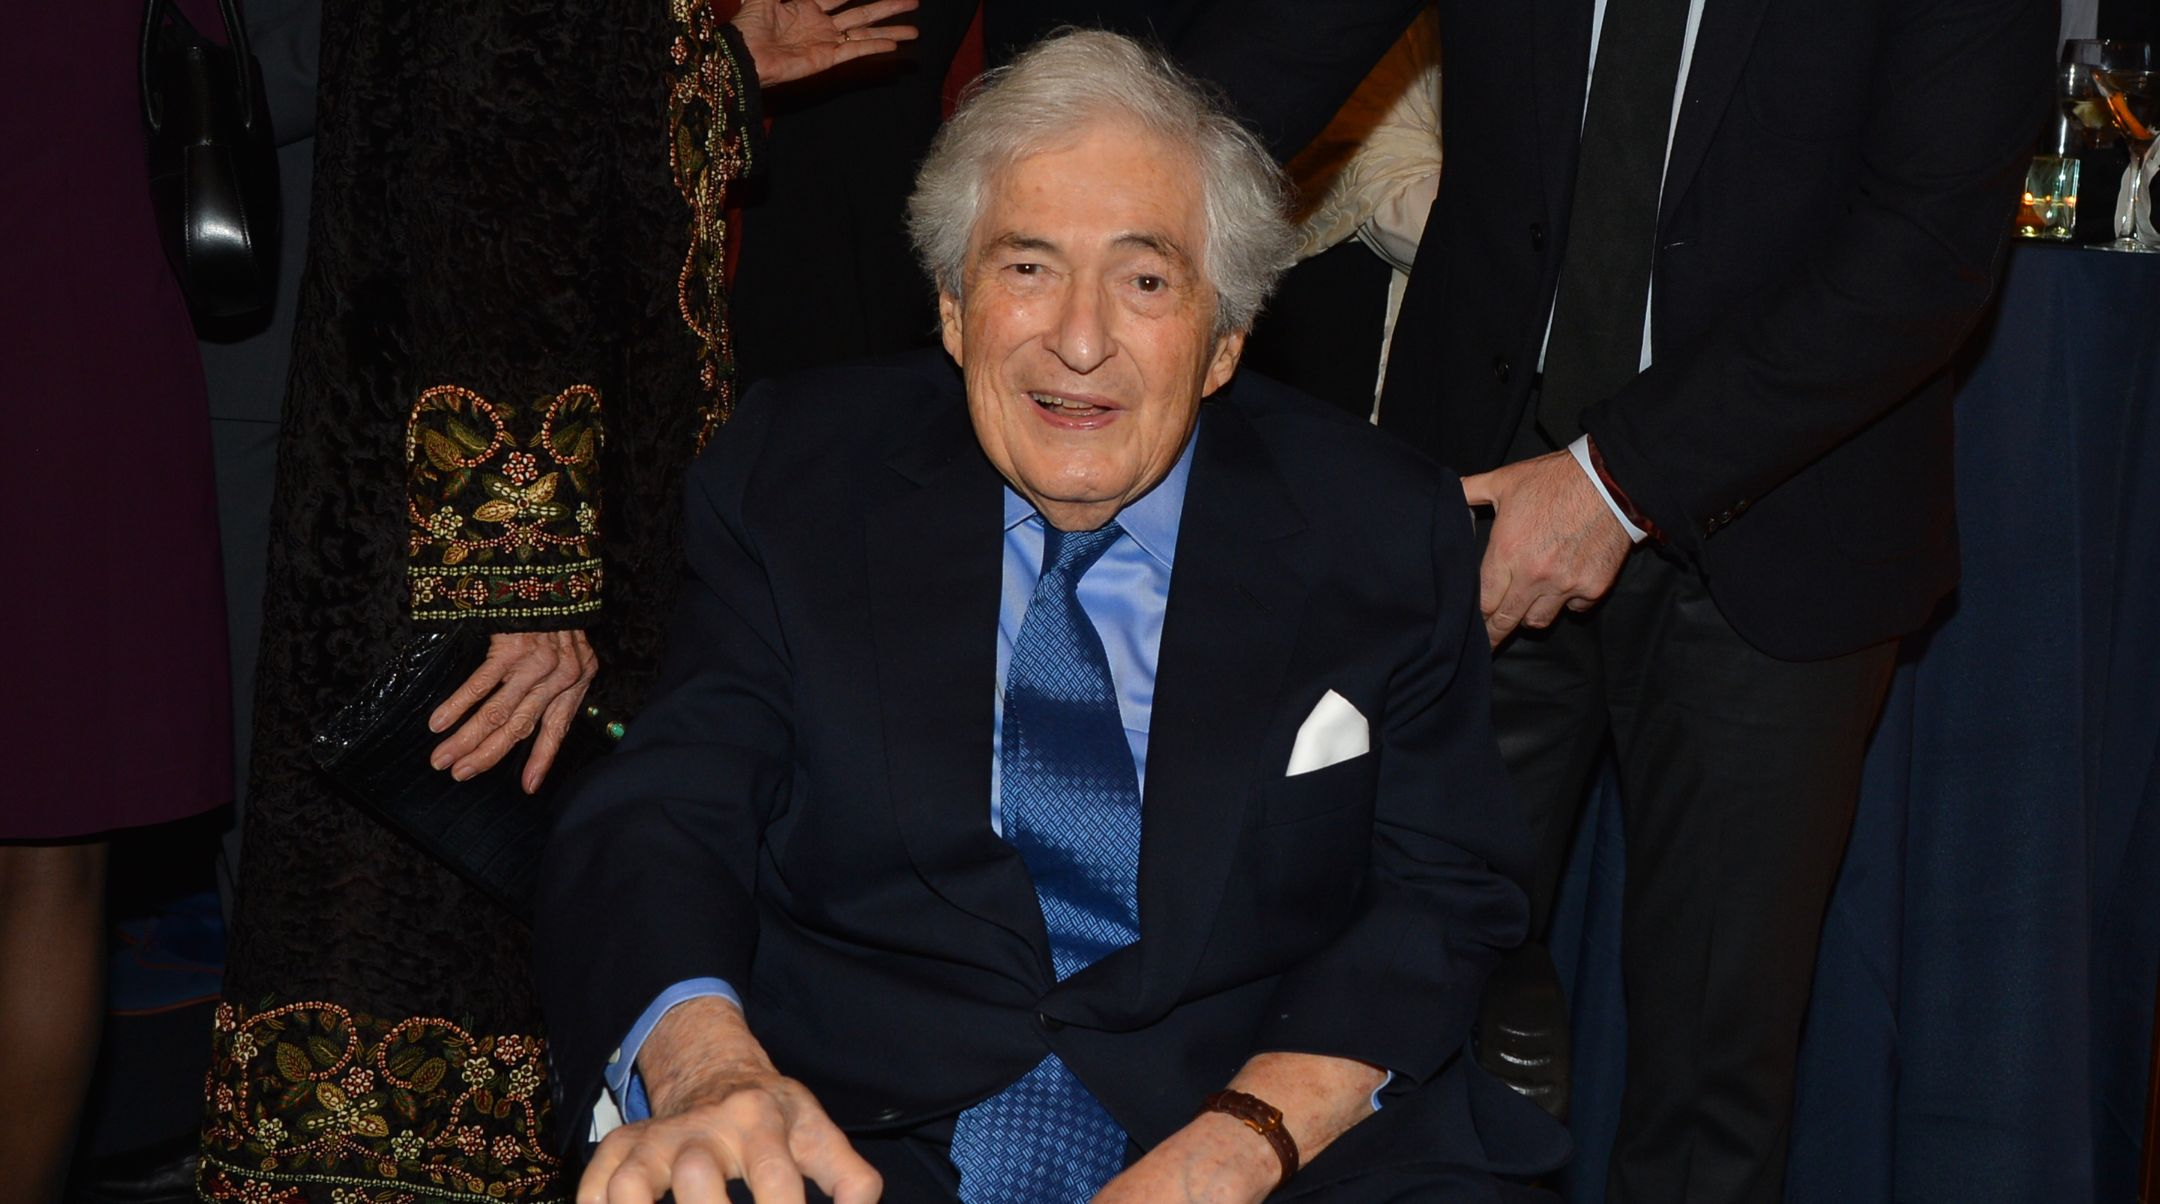 James Wolfensohn, former World Bank president and Jewish philanthropist, dies at 86